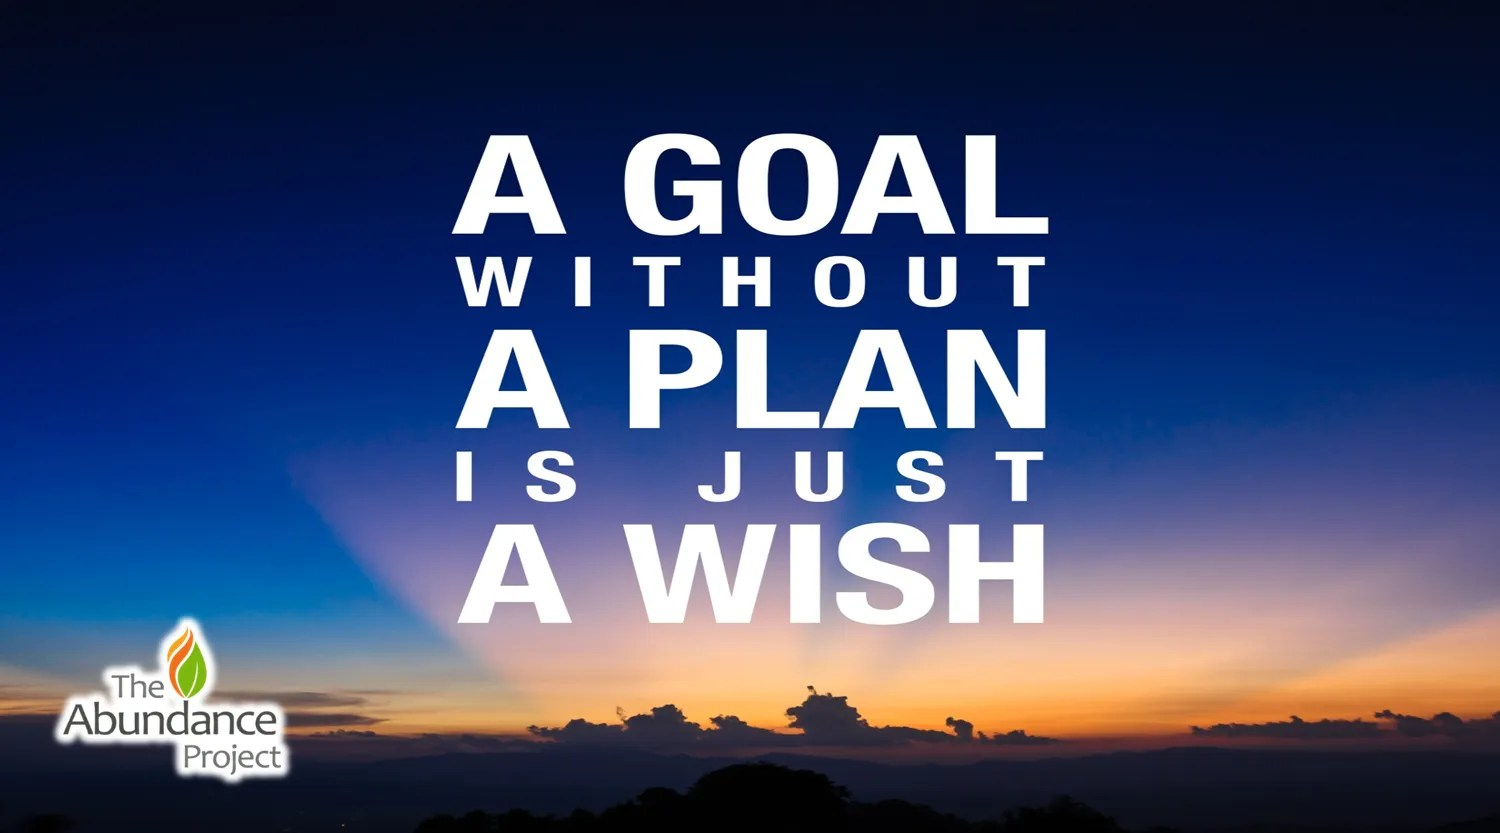 Achieve Quotes Wallpaper 4 Essential Steps To Setting And Achieving Goals The